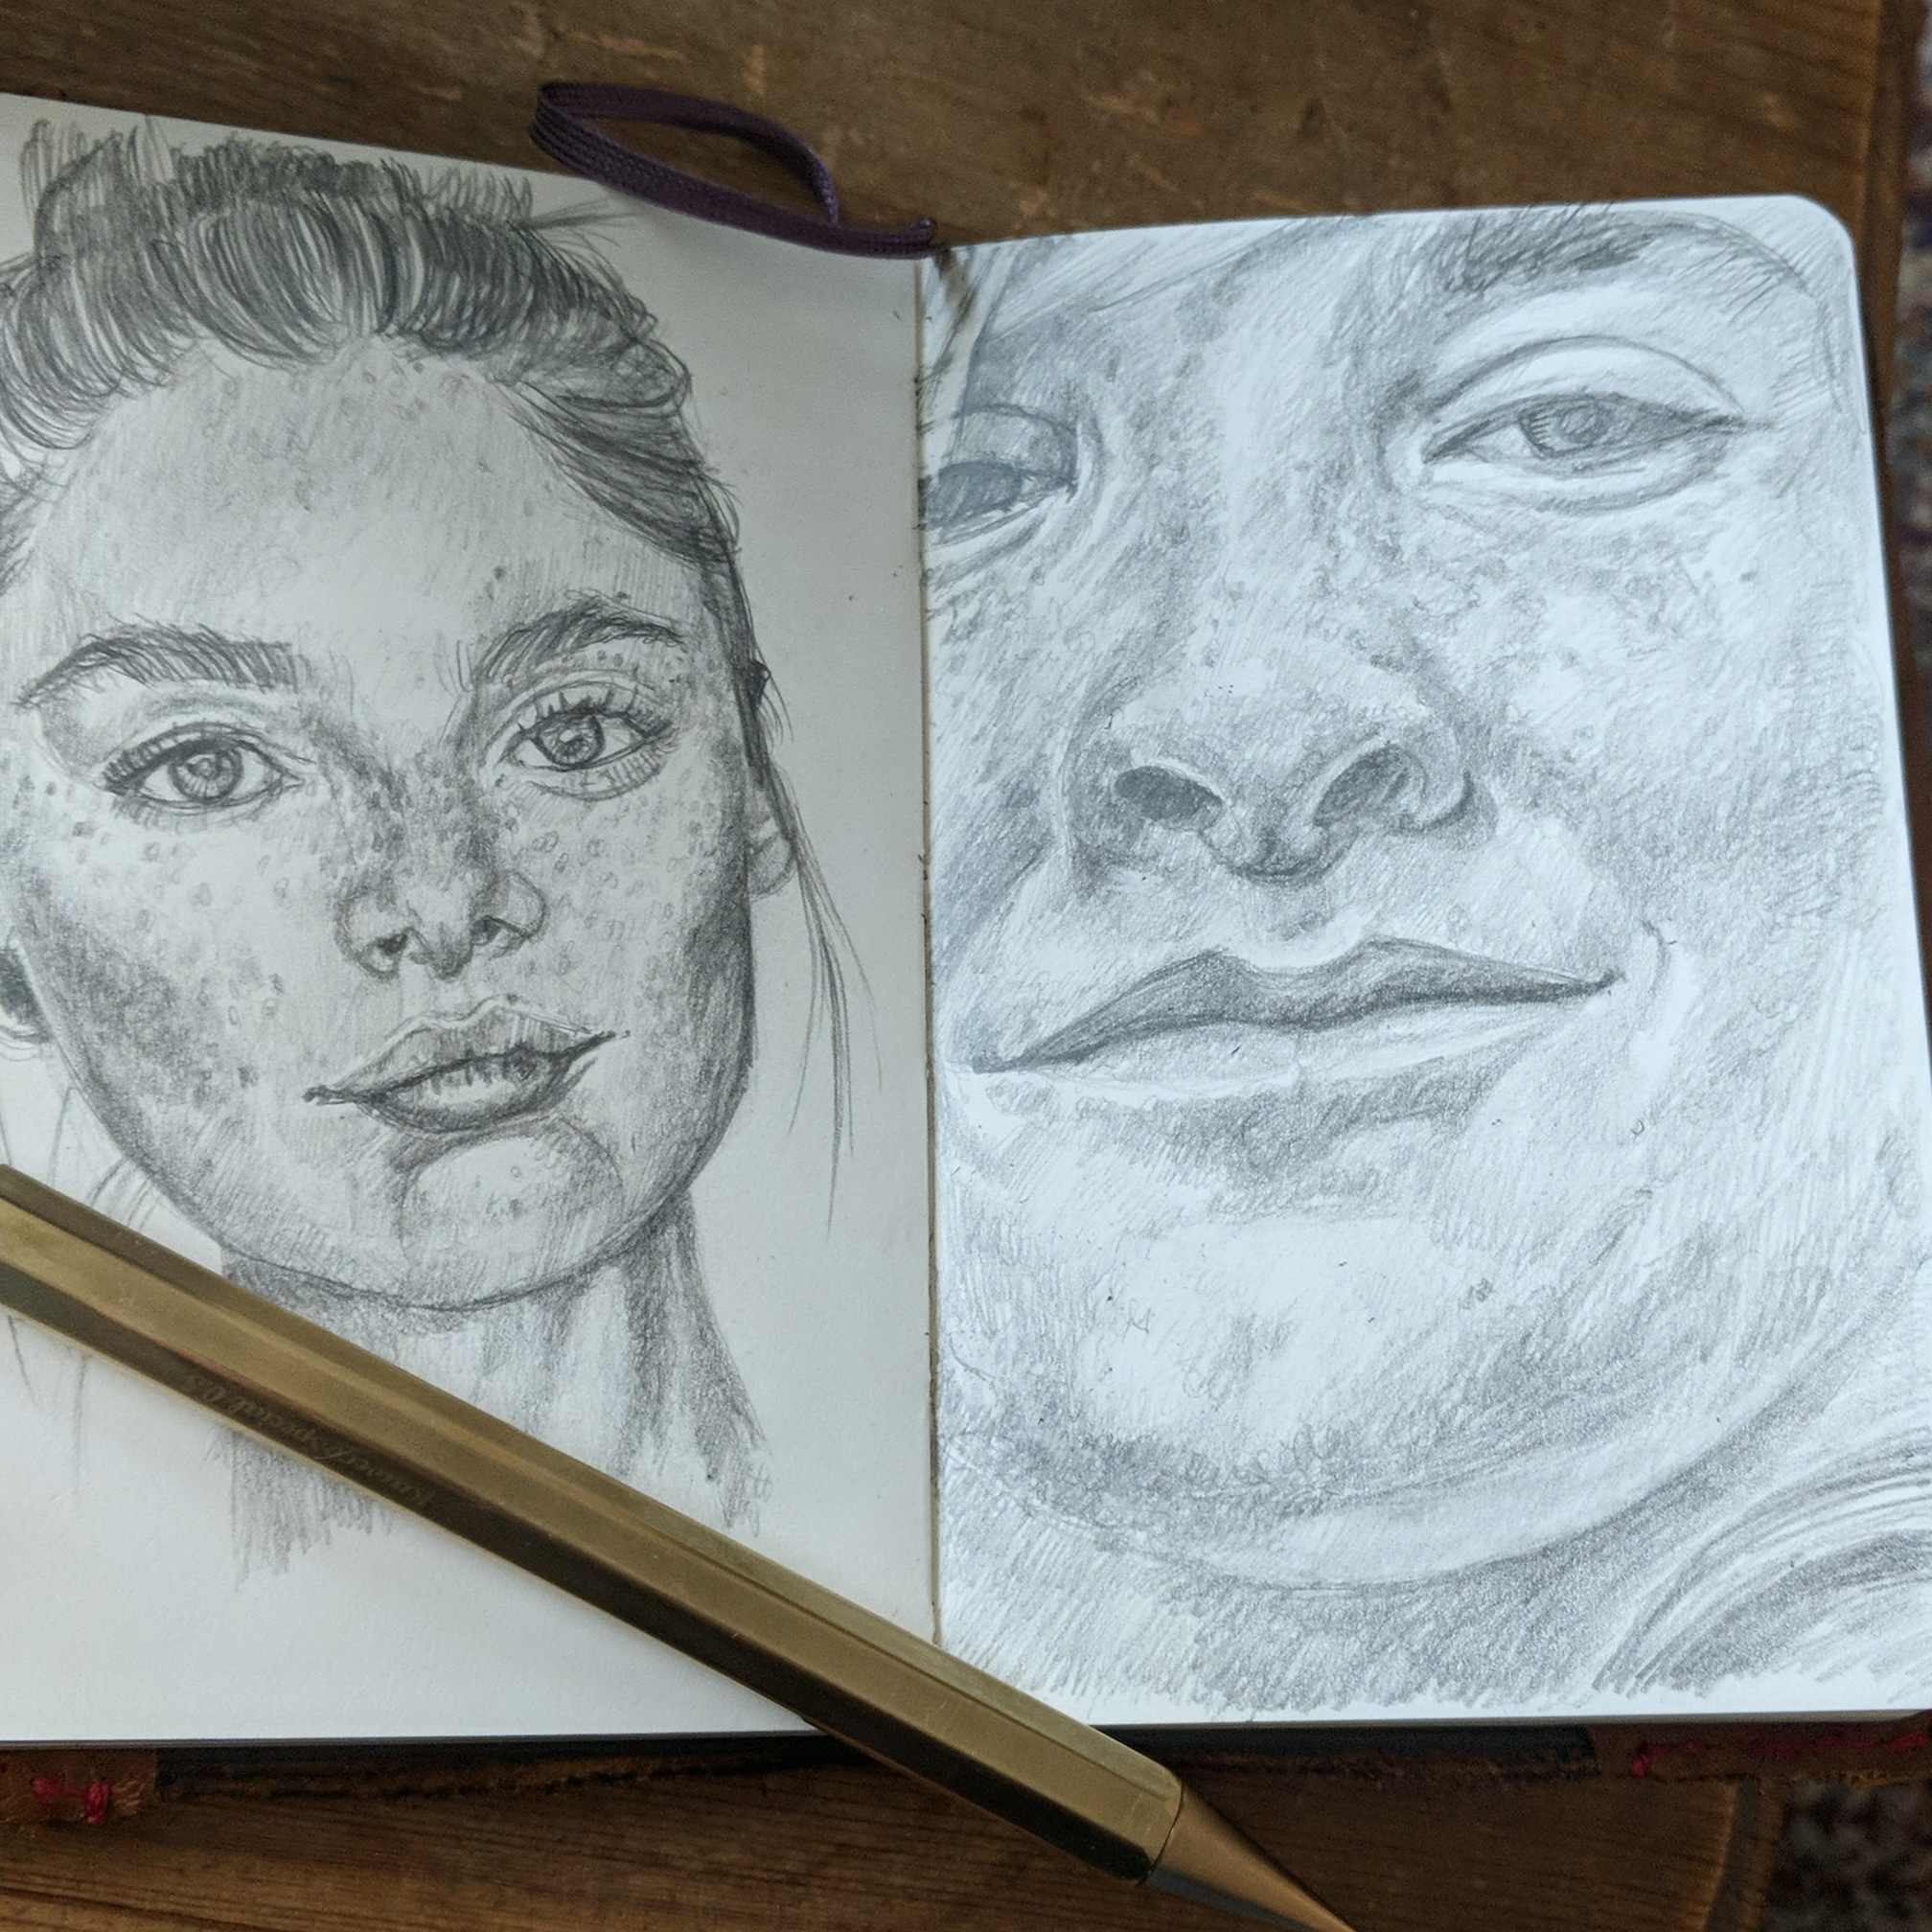 A page in my moleskine